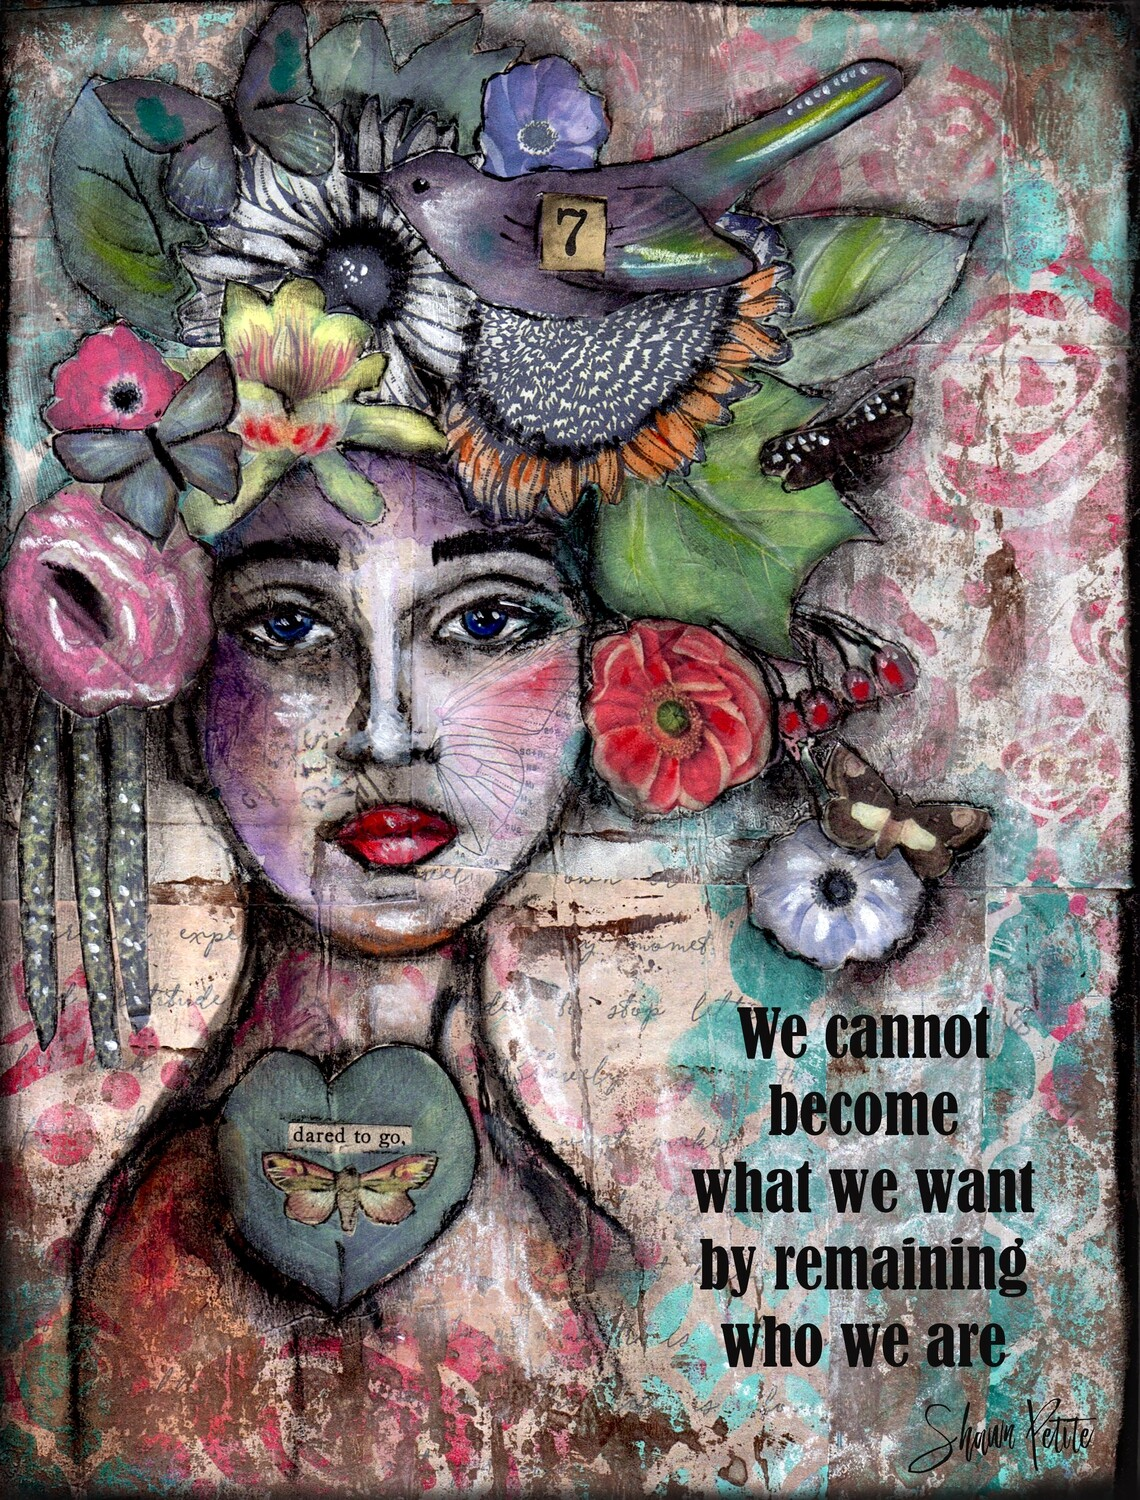 """""""Dared to go, who we are"""" Print on Wood 4x6 Overstock"""